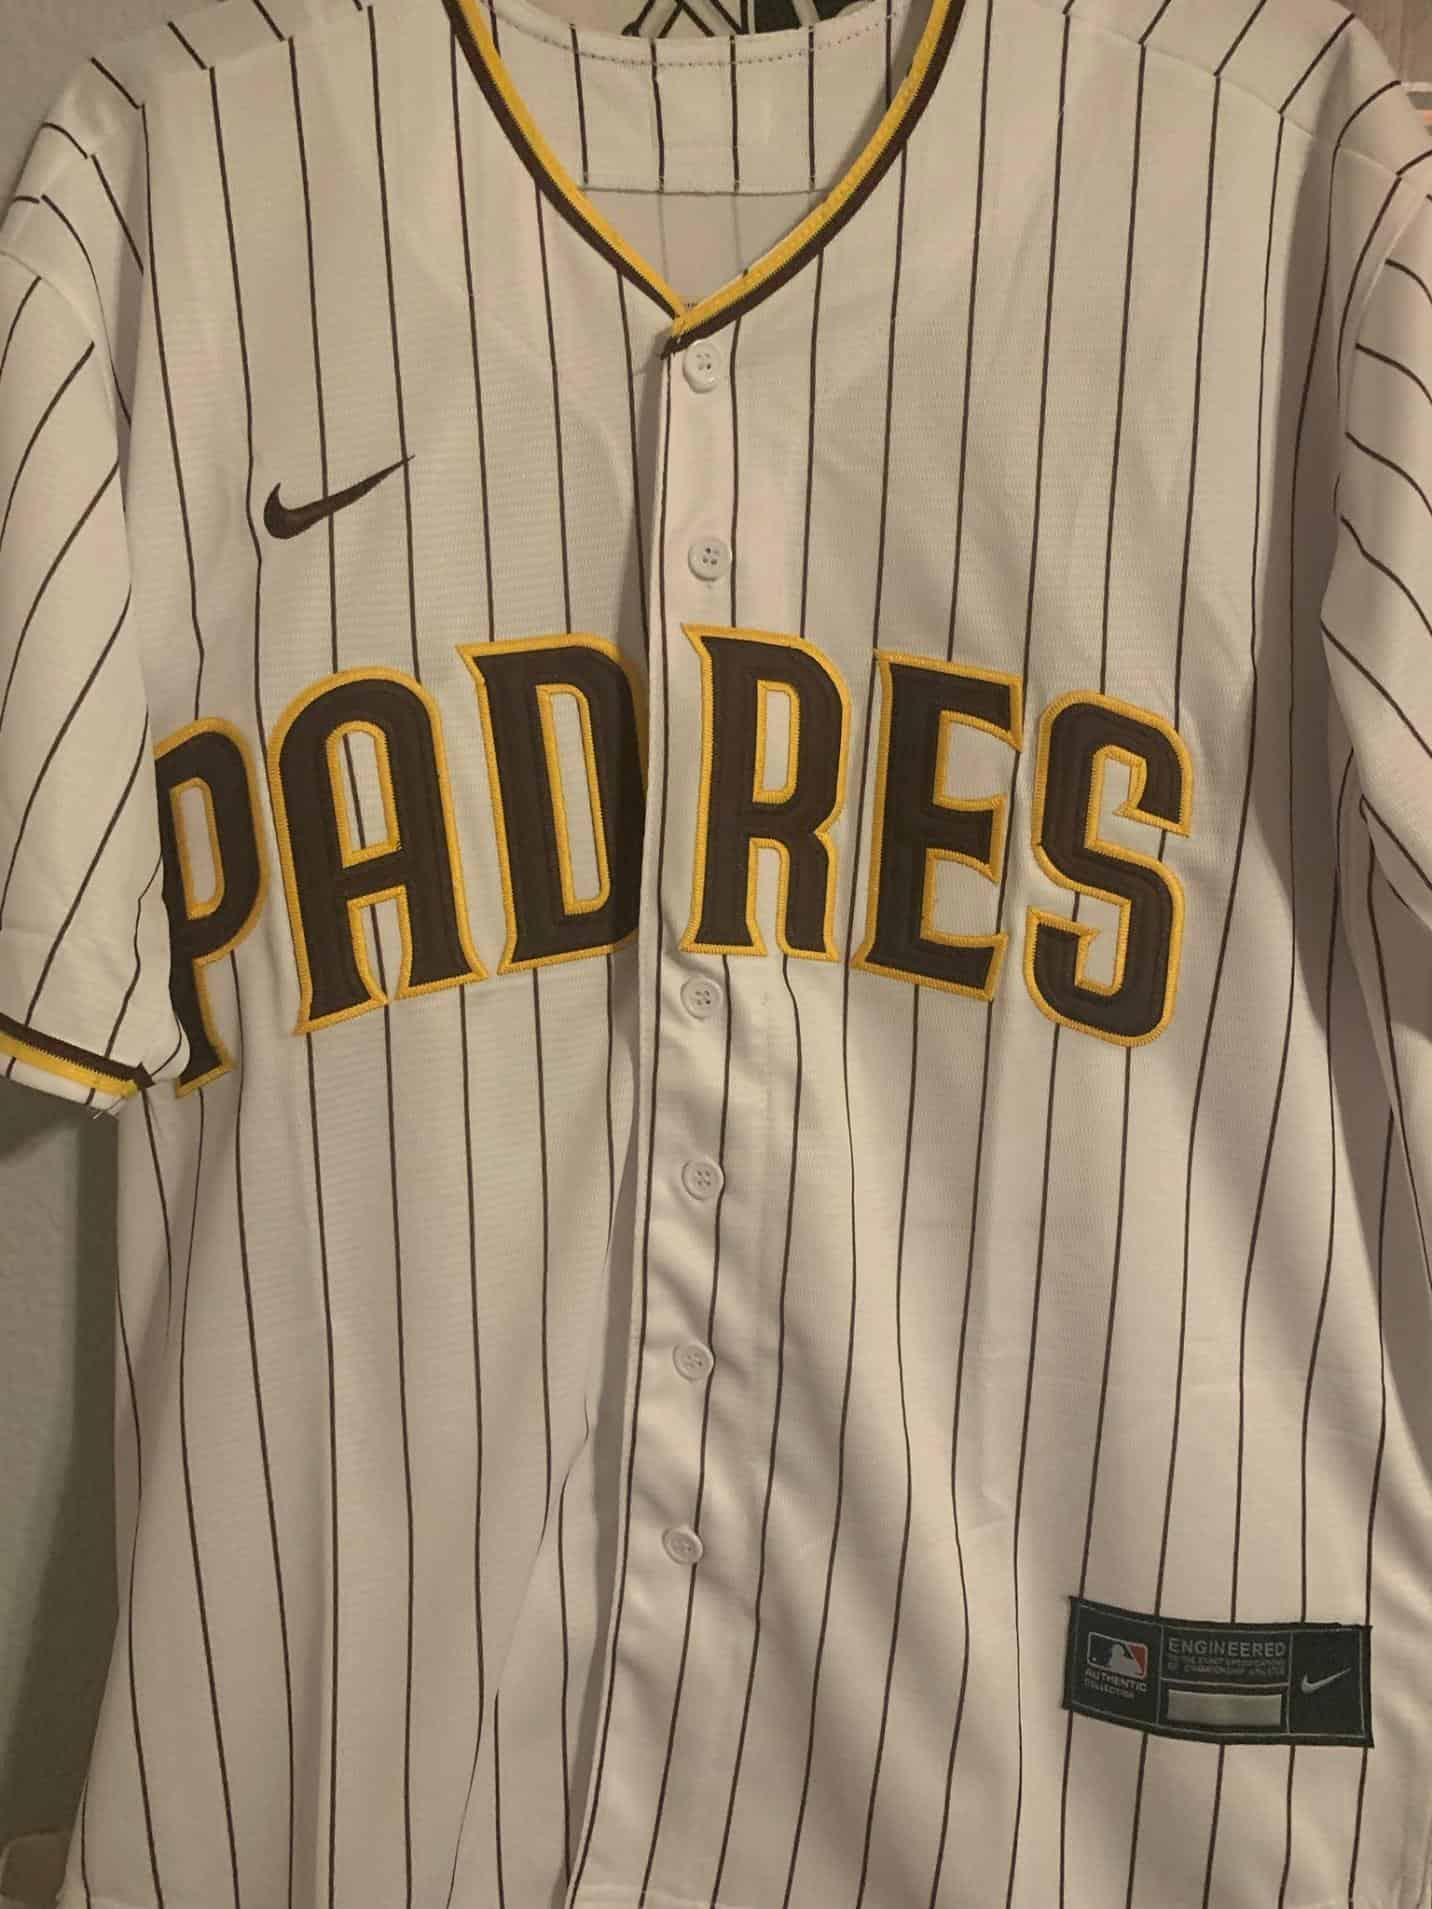 Padres White Pinstripe Baseball Jersey mbl jerseys real vs fake how tell the difference. notice the stitching, the prints, the colors palette, the wordings fonts the collar and sleeves